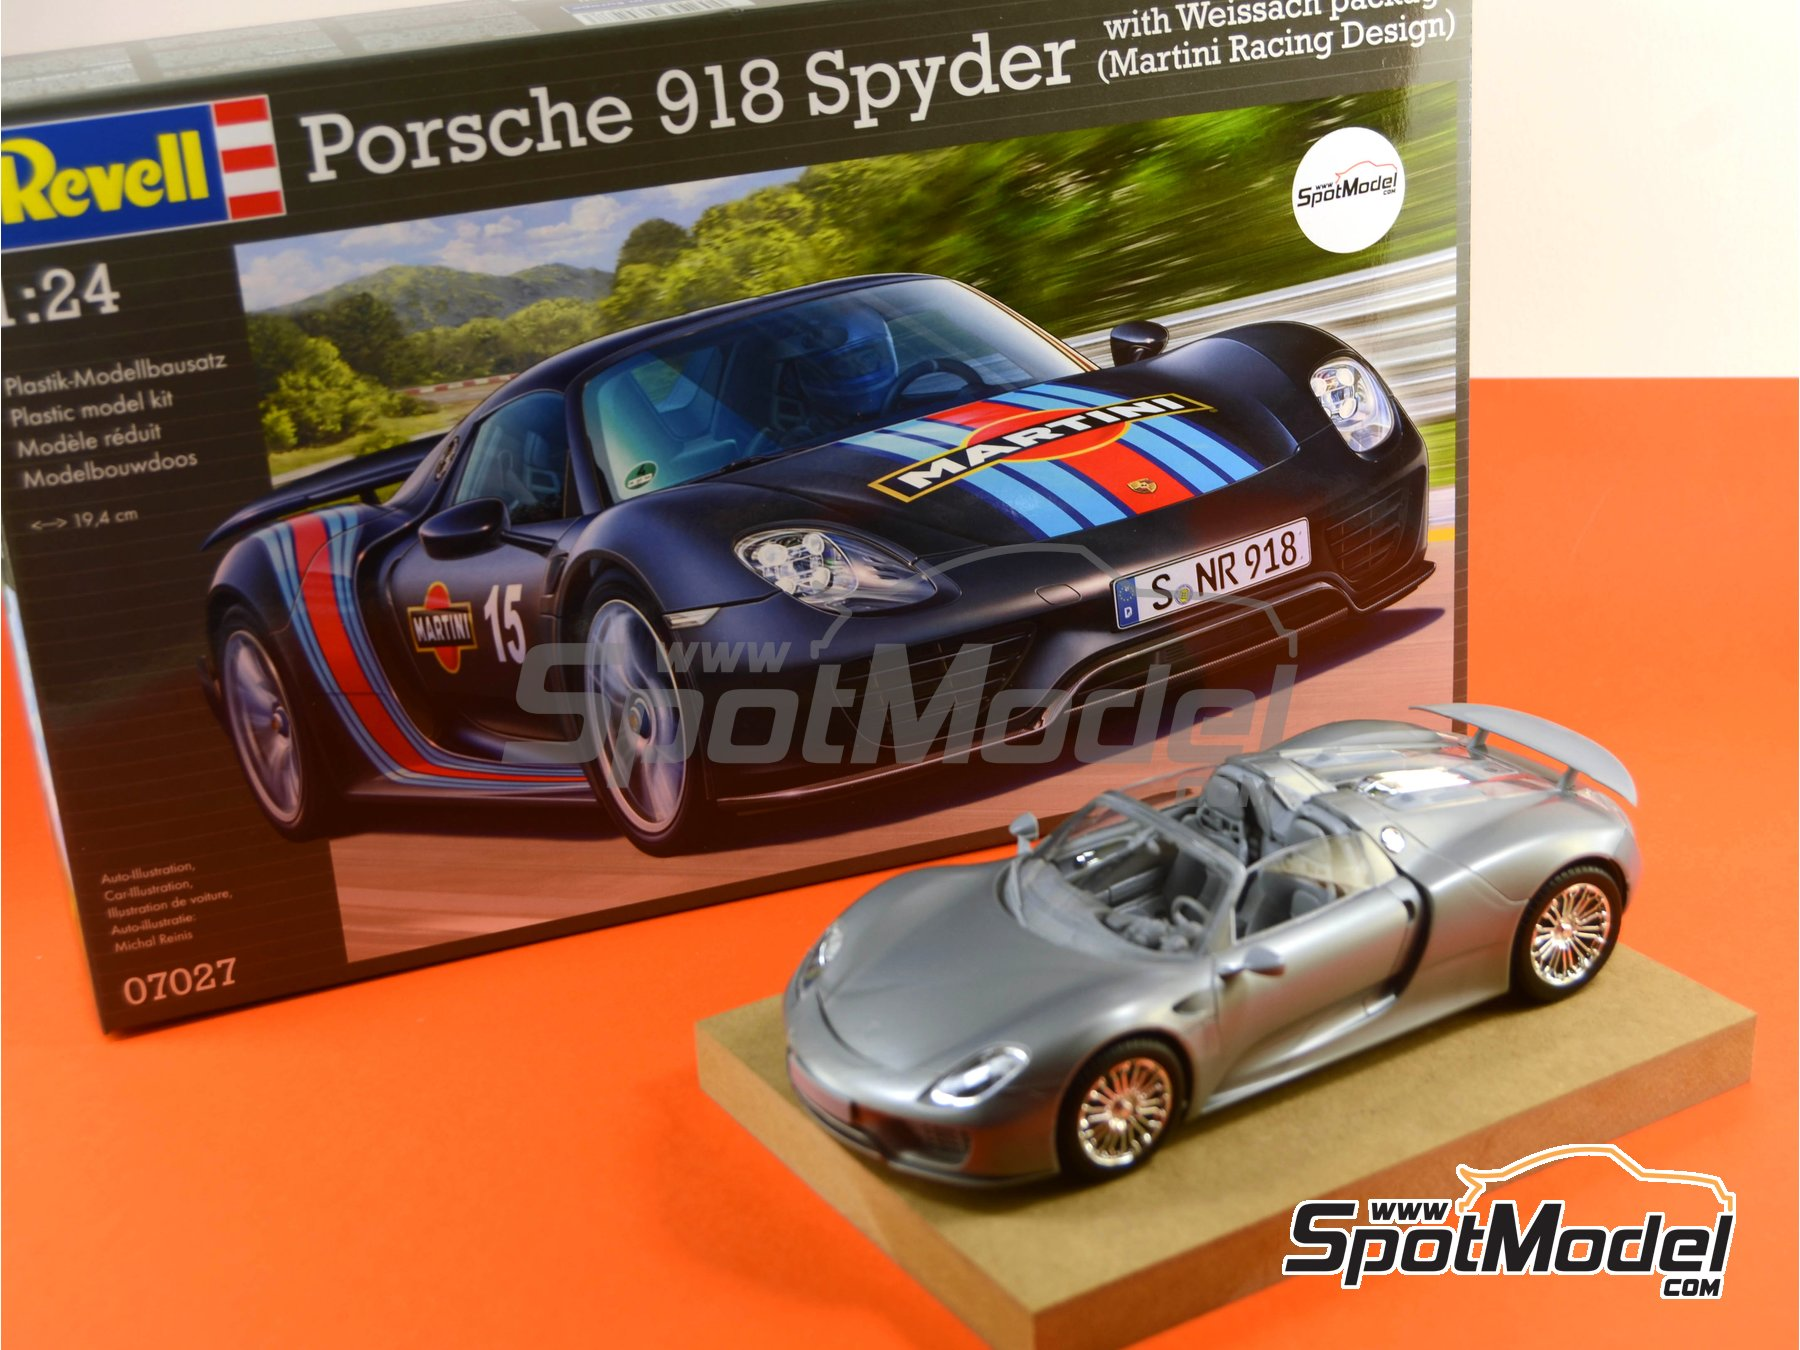 revell model car kit 1 24 scale porsche 918 spyder martini racing design. Black Bedroom Furniture Sets. Home Design Ideas